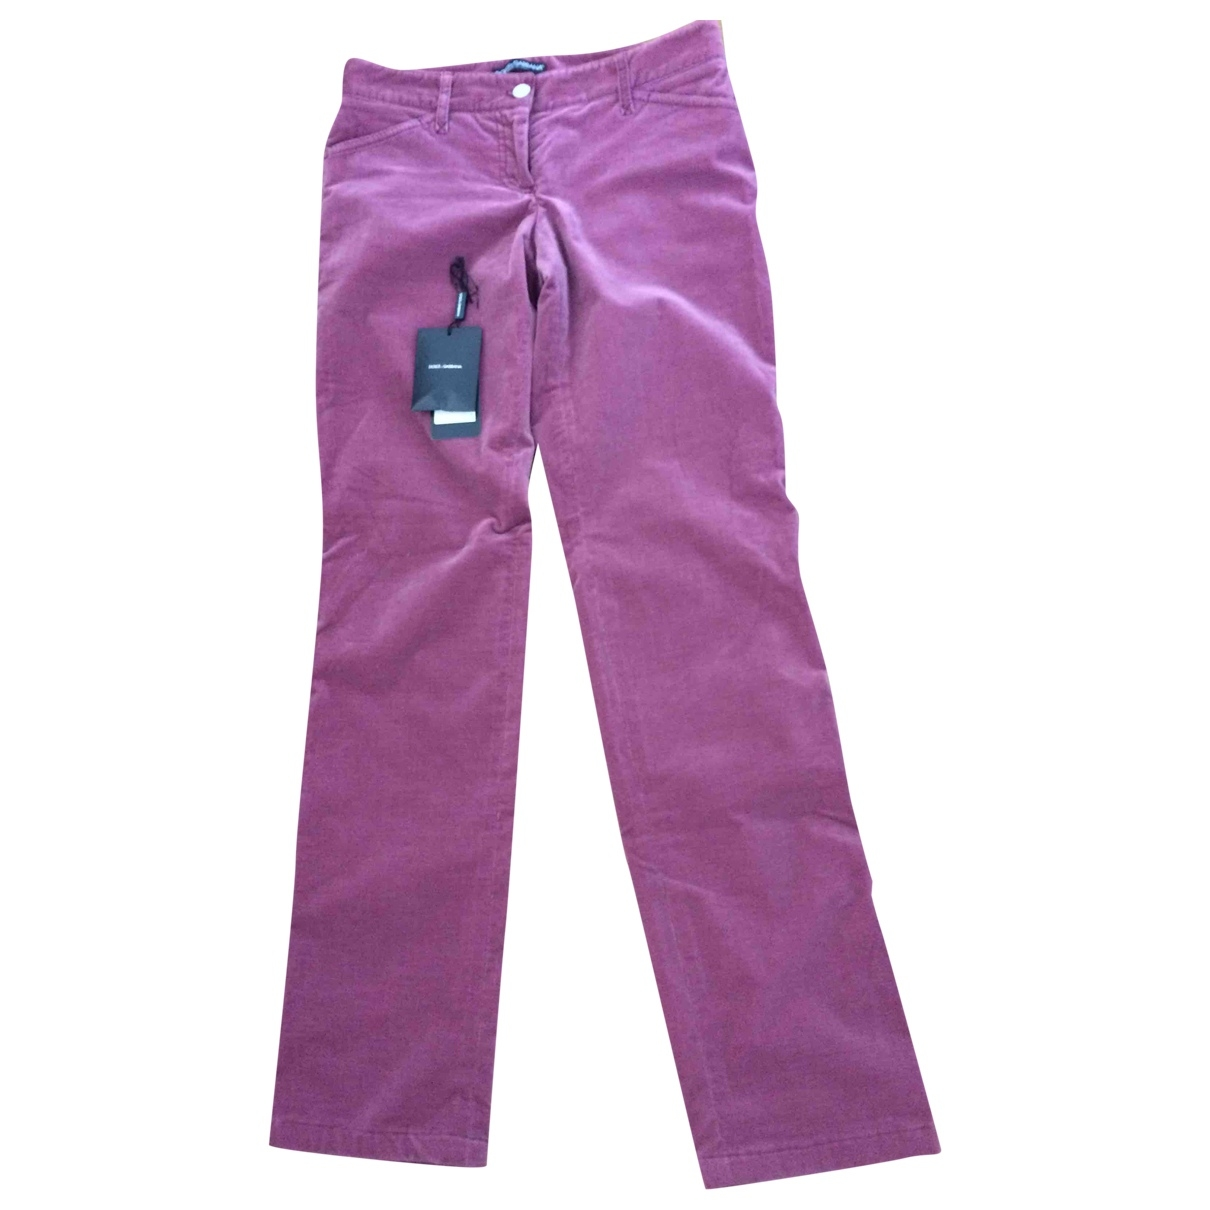 Dolce & Gabbana \N Pink Cotton Trousers for Women 38 IT